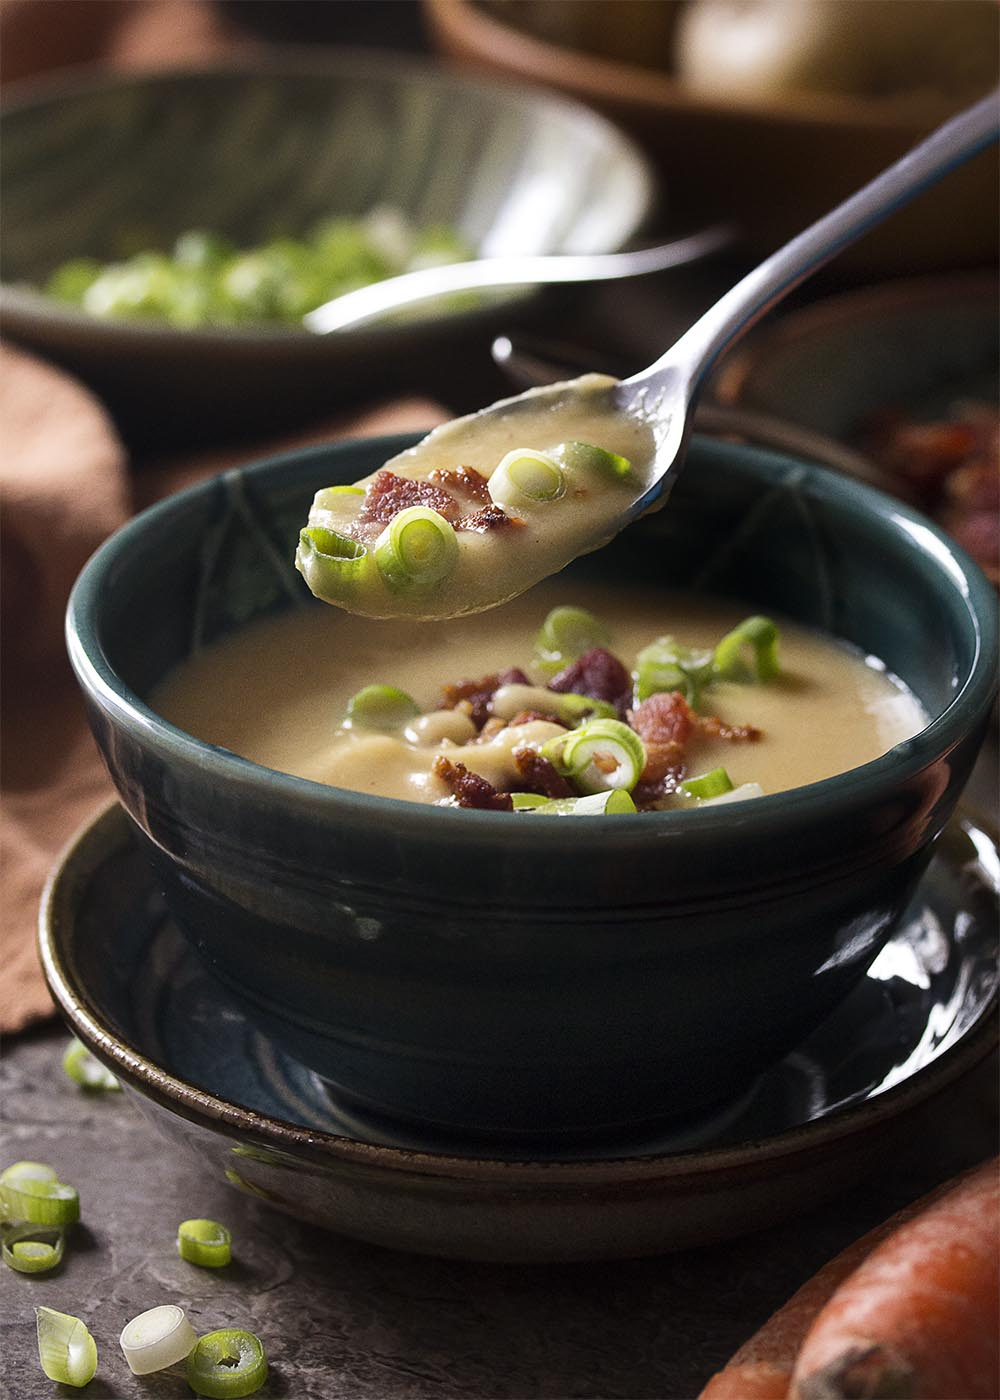 A spoonful of potato carrot soup coming out of the bowl, topped with bacon and scallions.